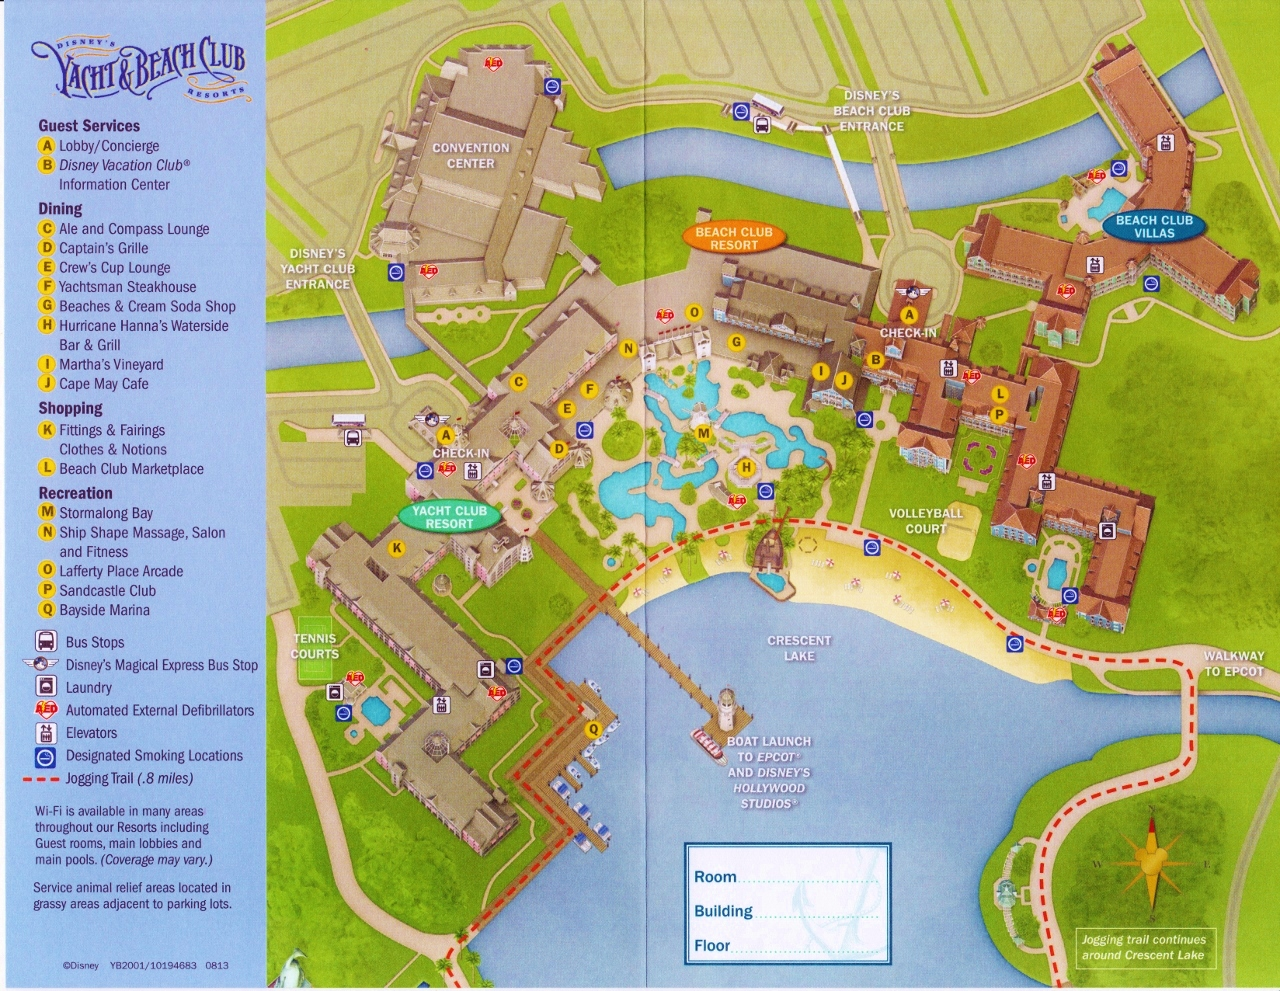 Map Disney's Yacht and Beach Club Resorts and Beach Club Villas